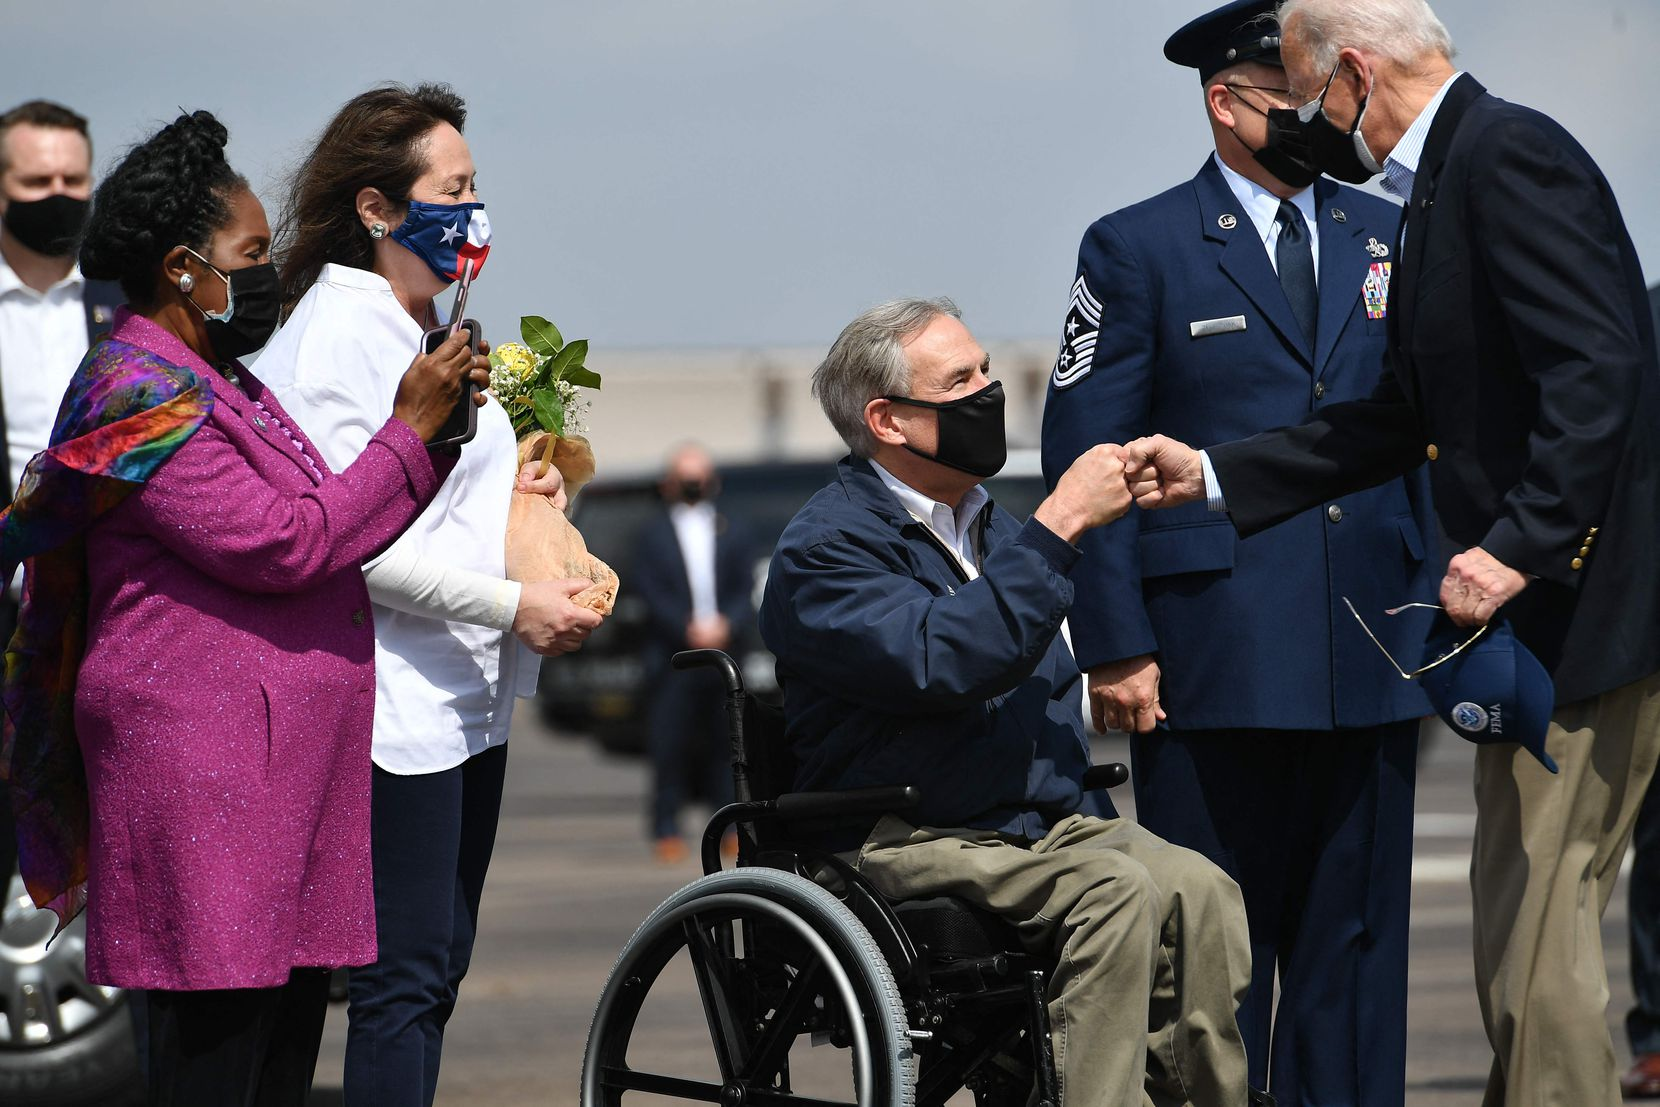 President Joe Biden greets Texas Gov.  Greg Abbott and his wife Cecilia Abbott (2nd L) at Ellington Field Joint Reserve Base in Houston on Feb. 26, 2021. At left is Rep. Sheila Jackson Lee. Biden visited Houston after severe winter storms left much of the state without electricity for days.